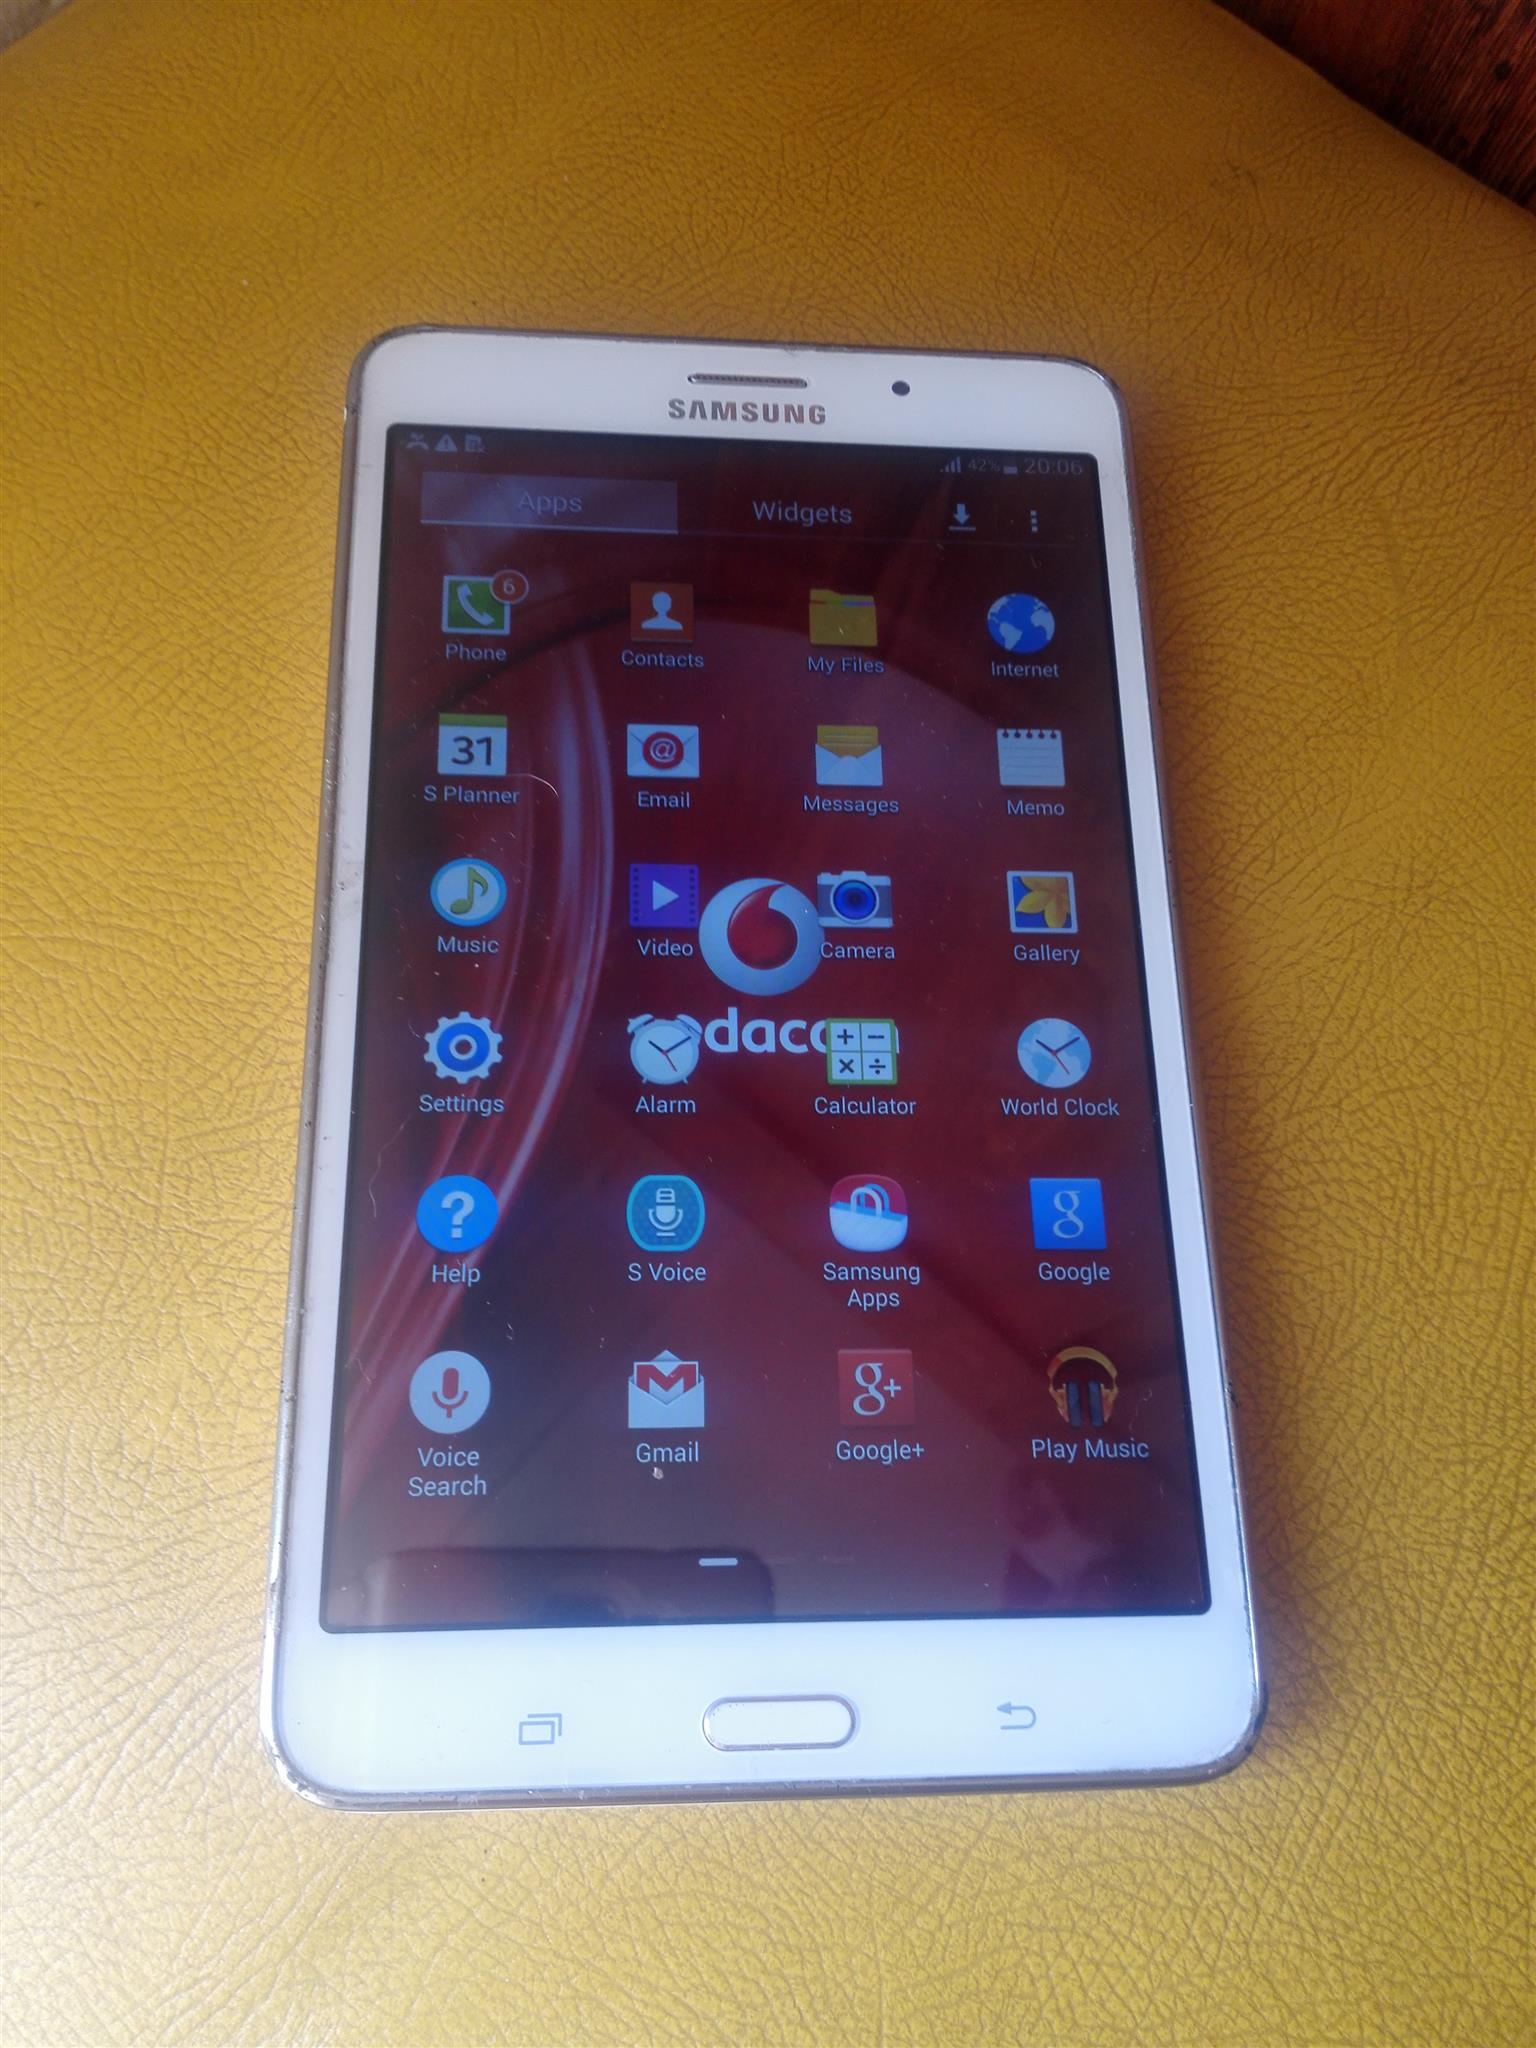 Samsung galaxy tab 4 for sale 3g/wifi